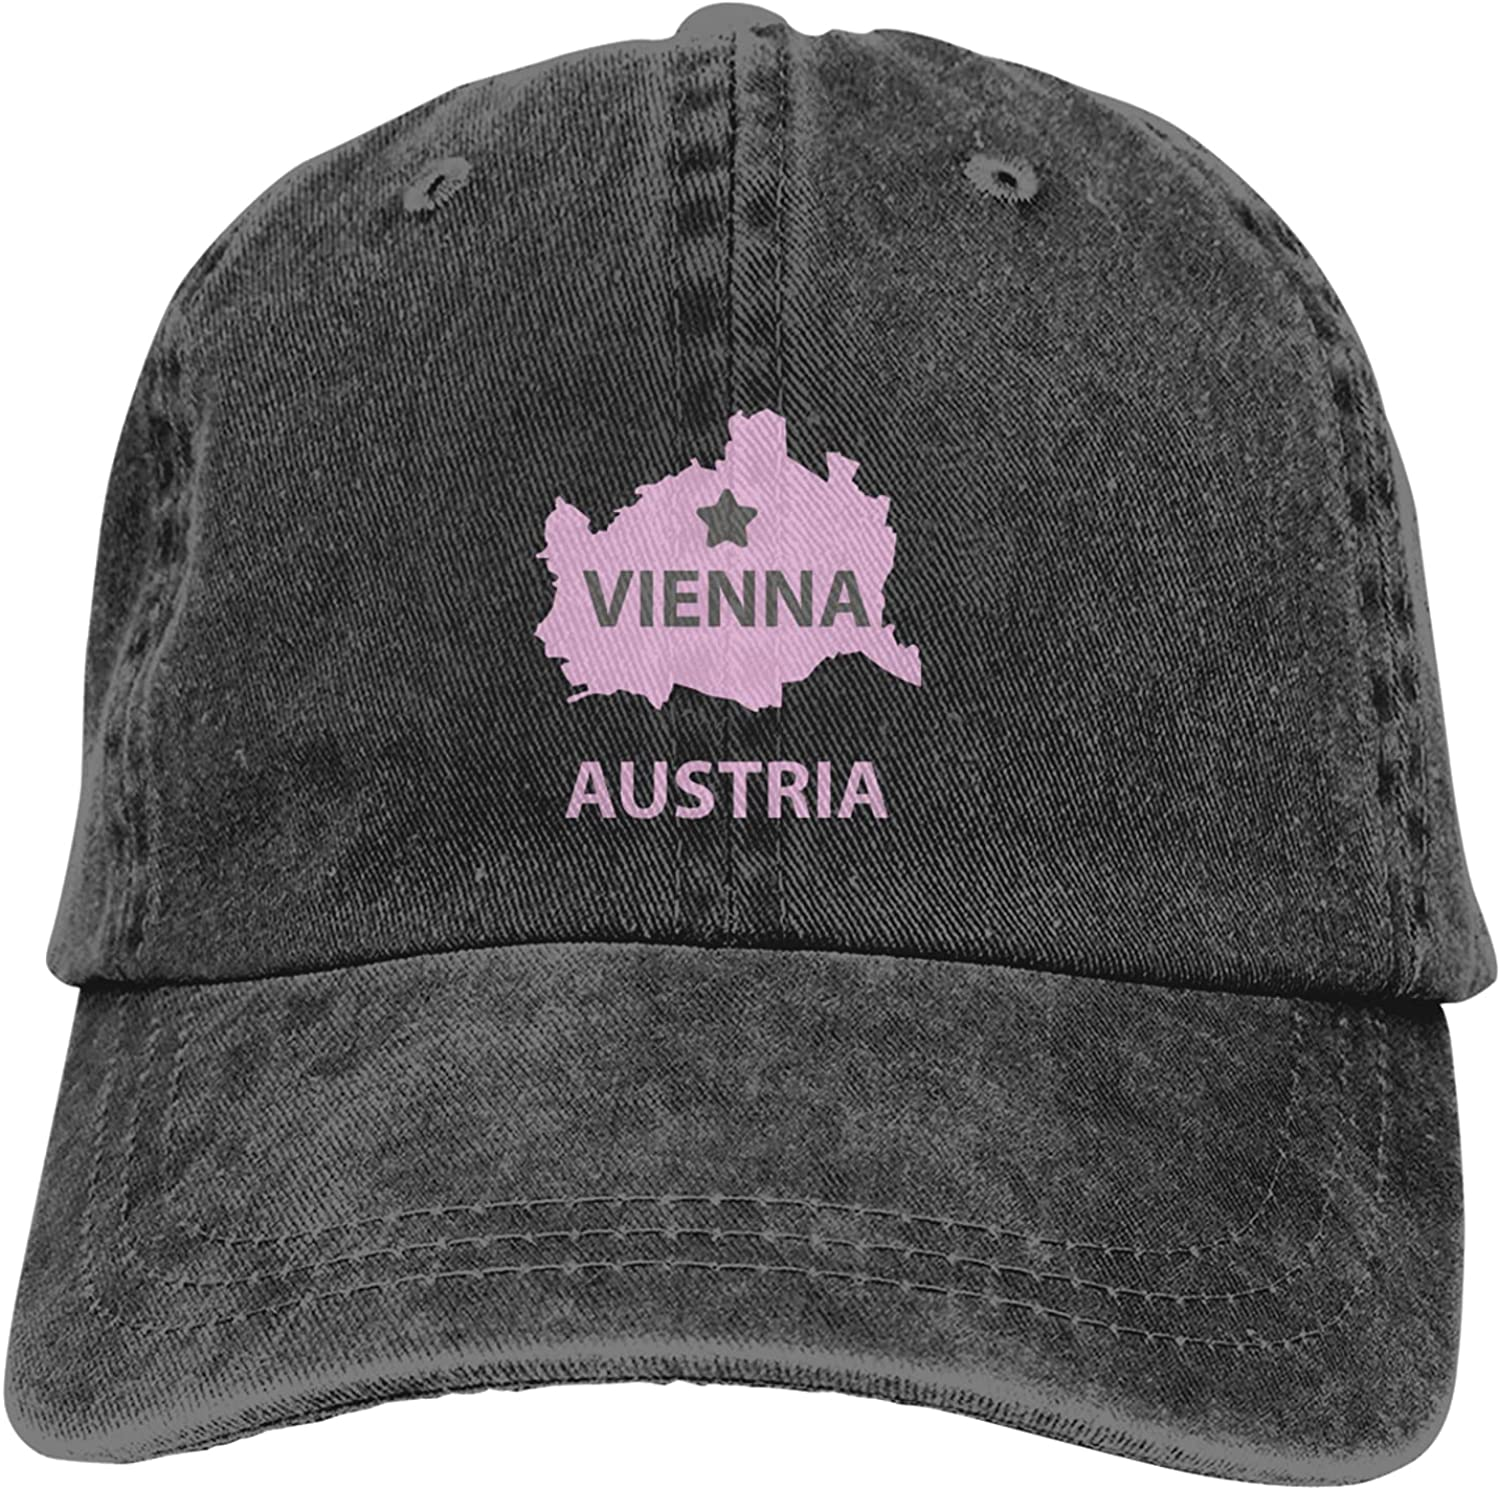 Vienna Austria Map Adjustable Athletic Casual Baseball Fitted Cap Dad Hat Black